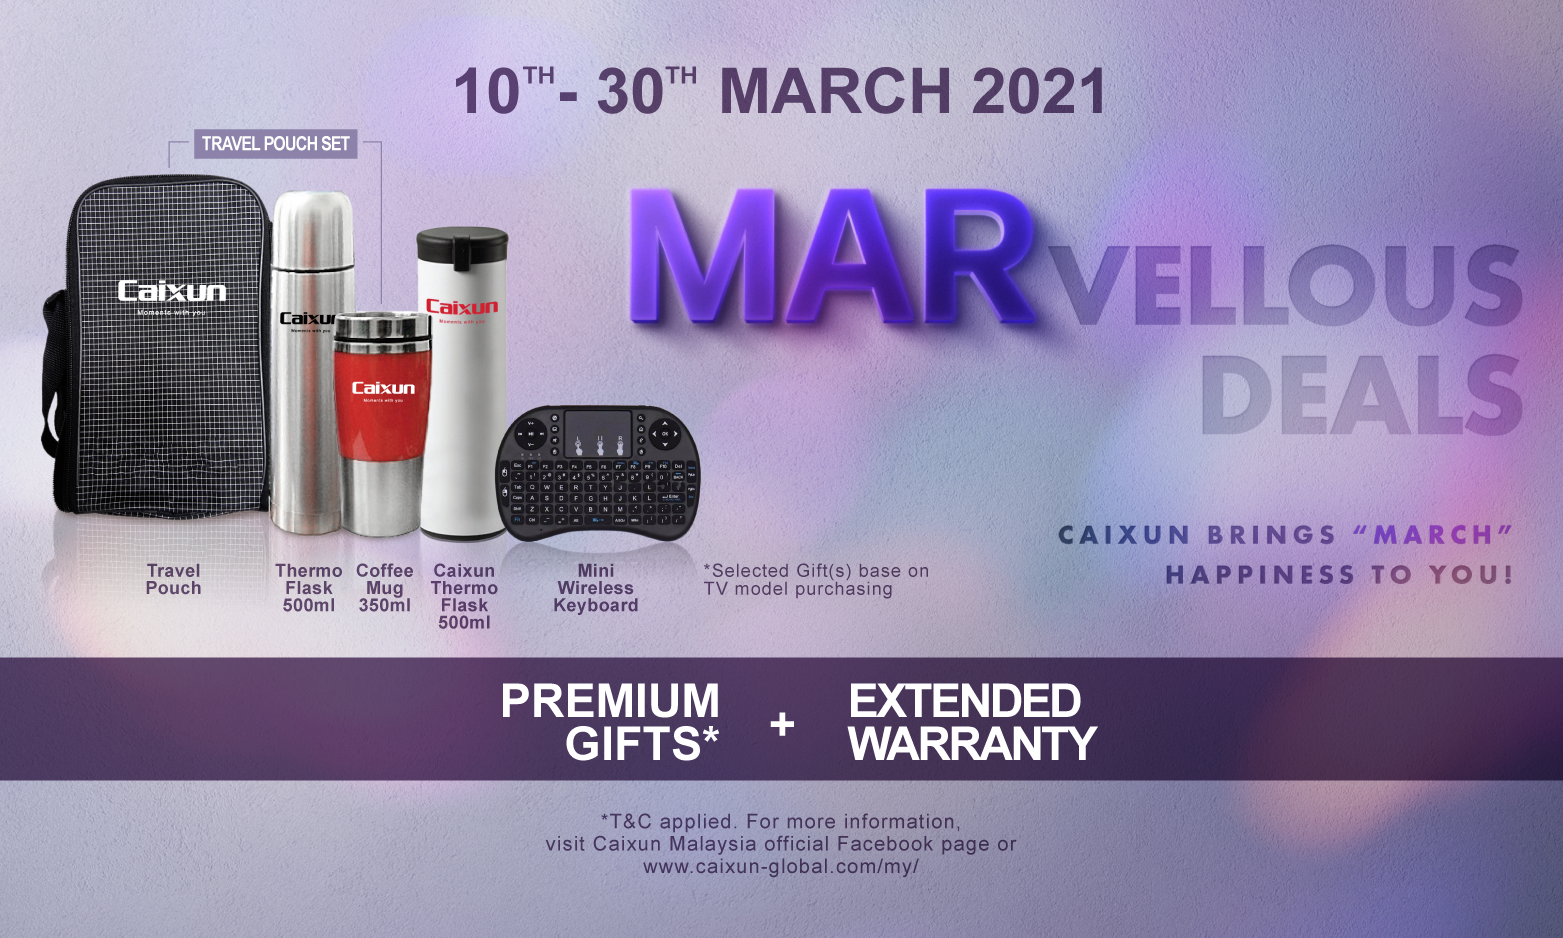 Enjoy MARellous Deals from Caixun Malaysia!  (How To Redeem & Campaign Full Terms and Conditions)